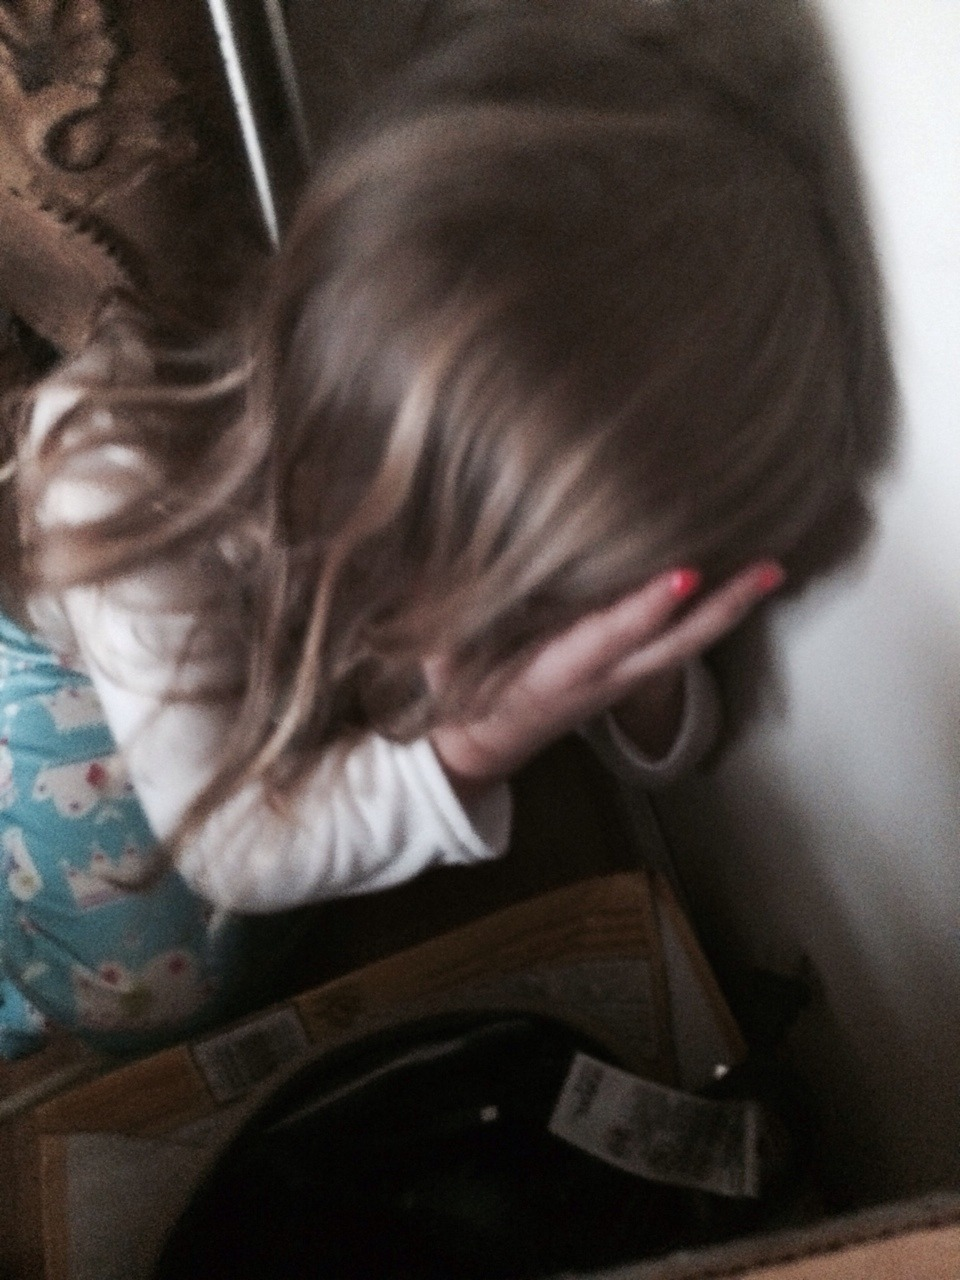 """Her brother blamed her for his fart.""Submitted By: Candice S. Location: New York, United States"